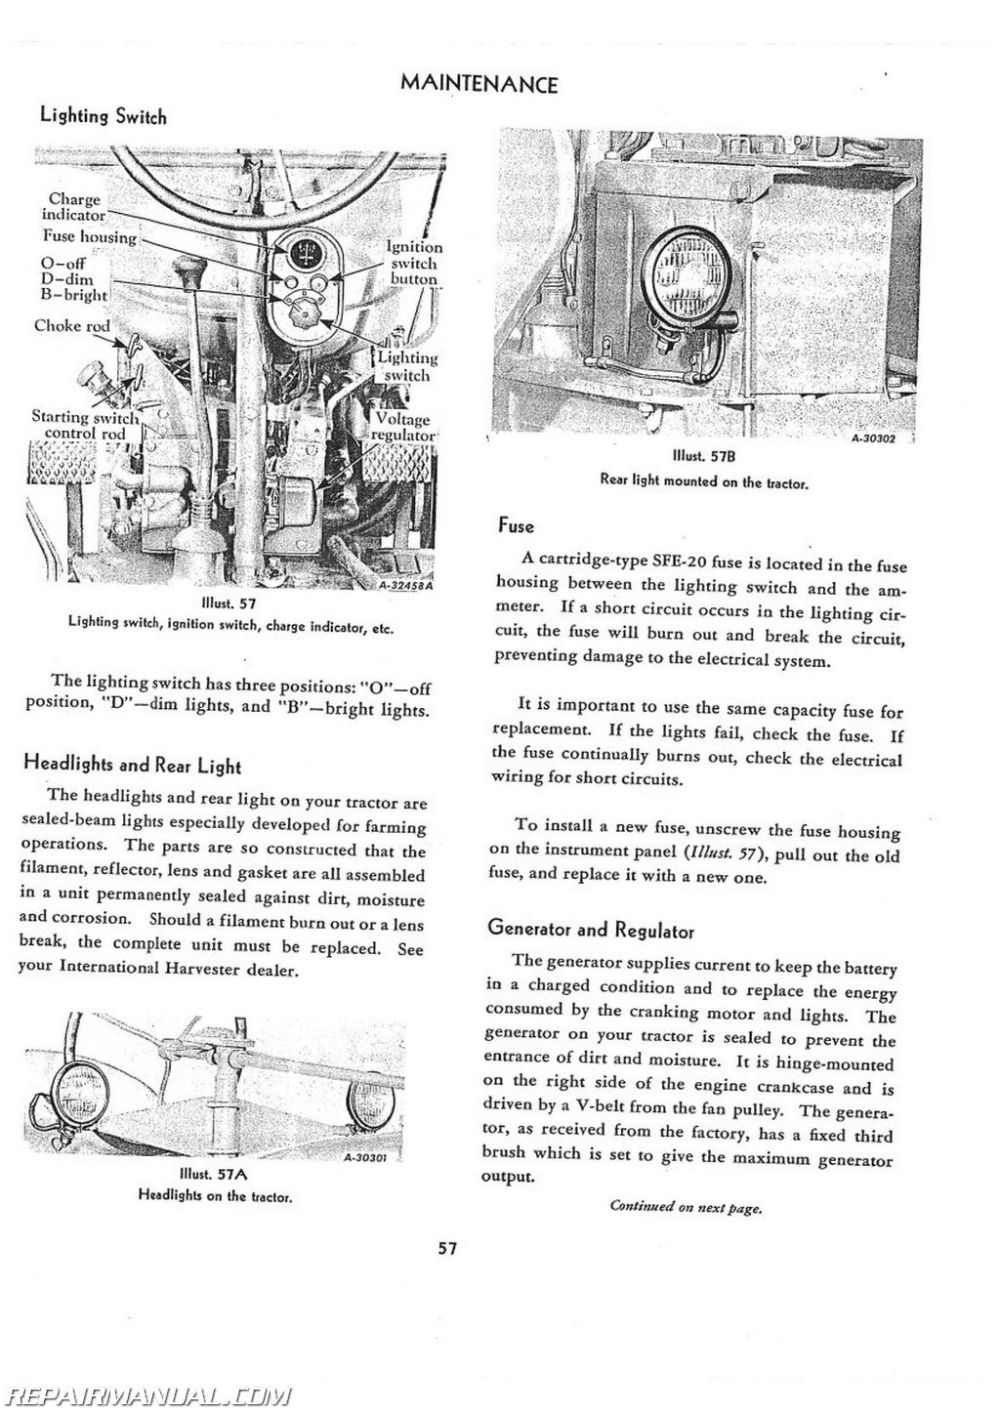 medium resolution of magnificent ih farmall super a wiring diagram elaboration source farmall super mta wiring diagram diagrams international harvester